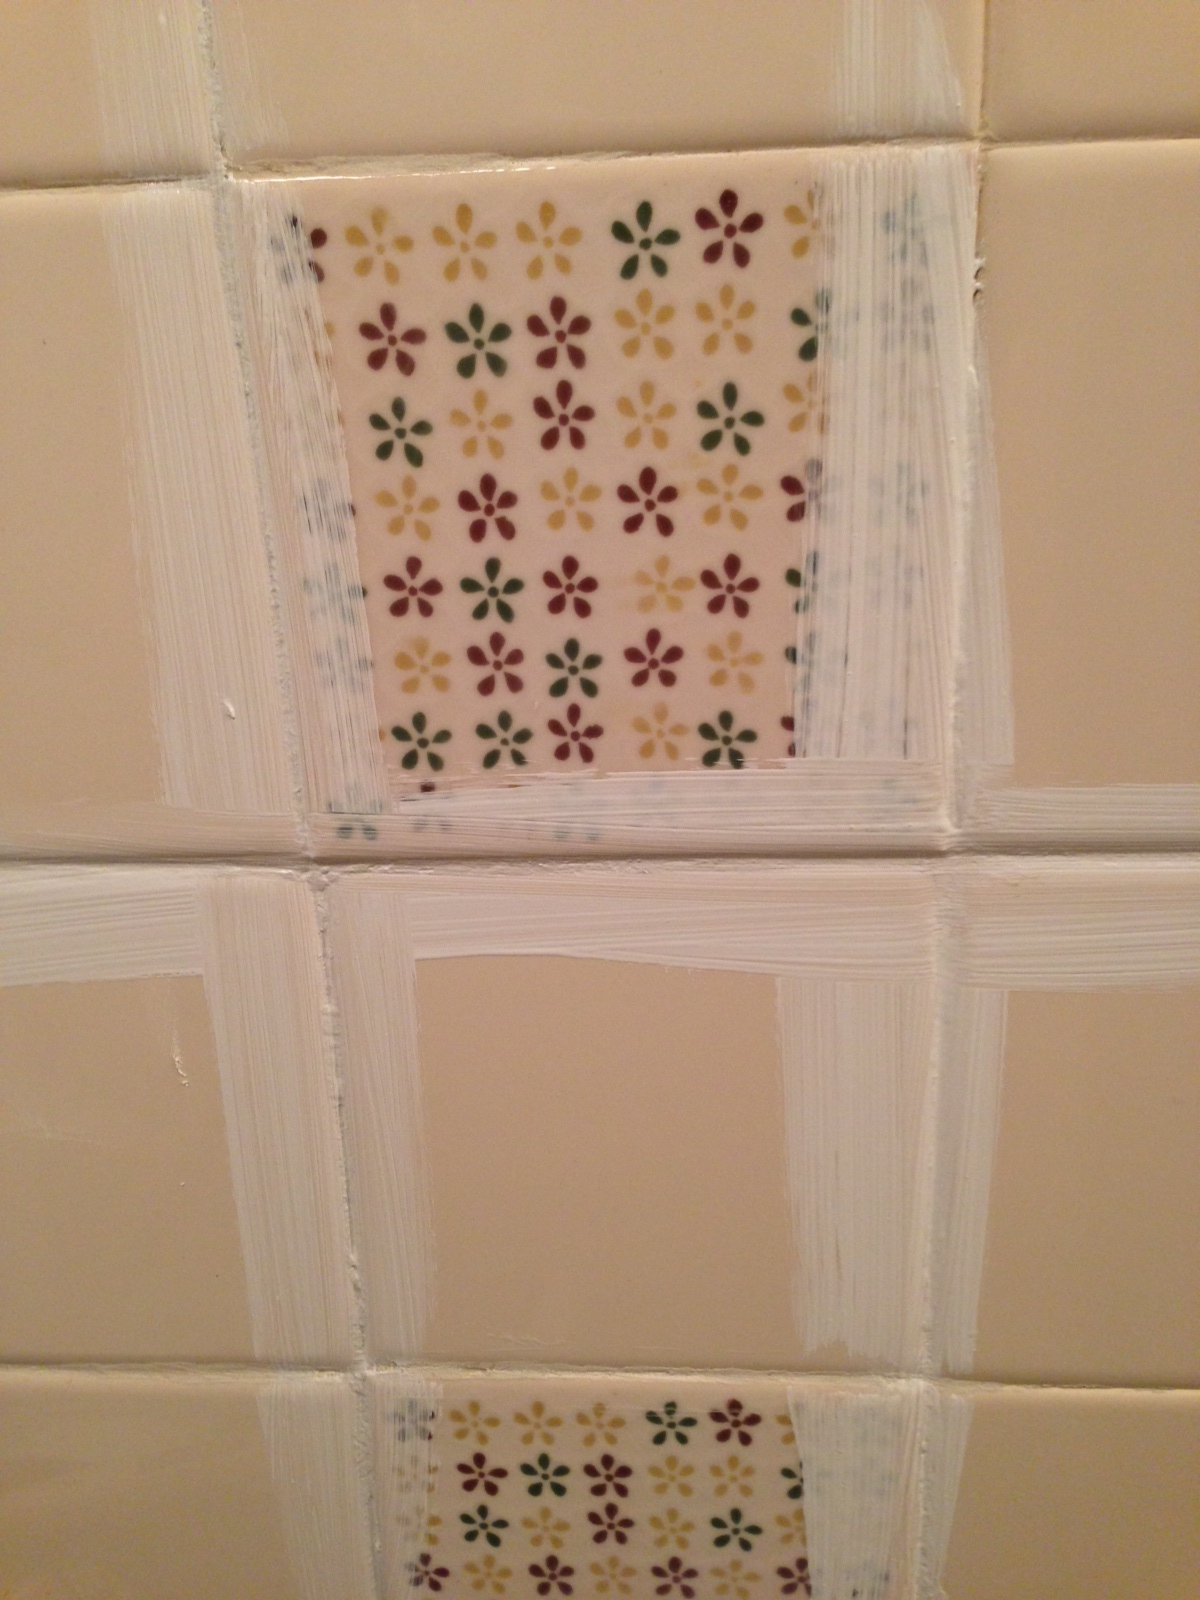 Amazing How To Paint Tile By The Learner Observer On Remodelaholic.com